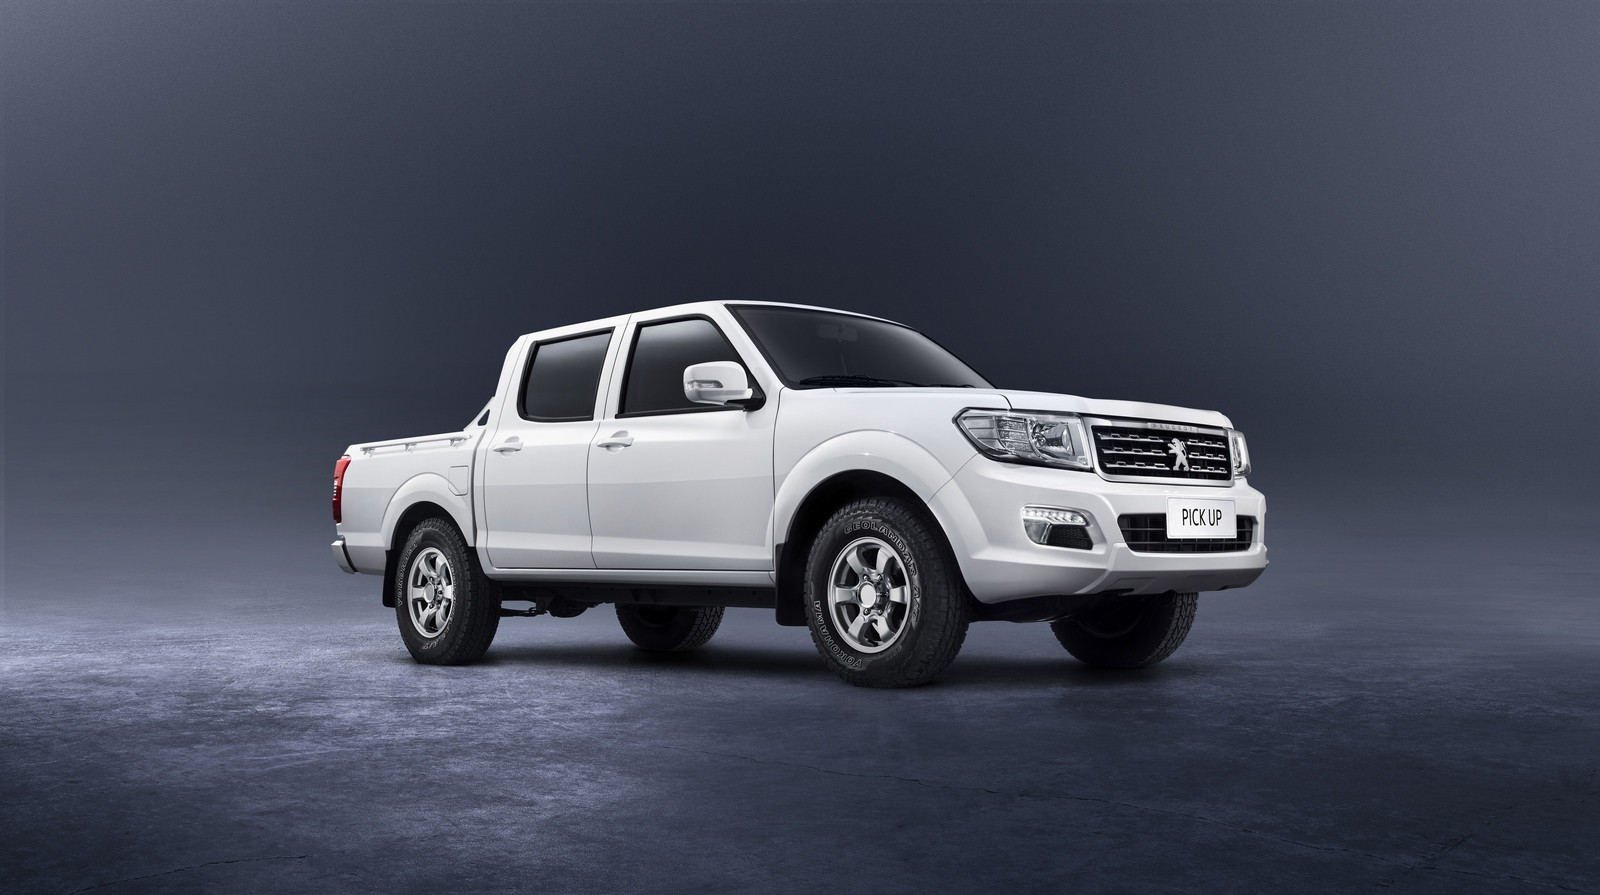 Pick Up Dongfeng Rich Becomes 2017 Peugeot Pick Up In South Africa